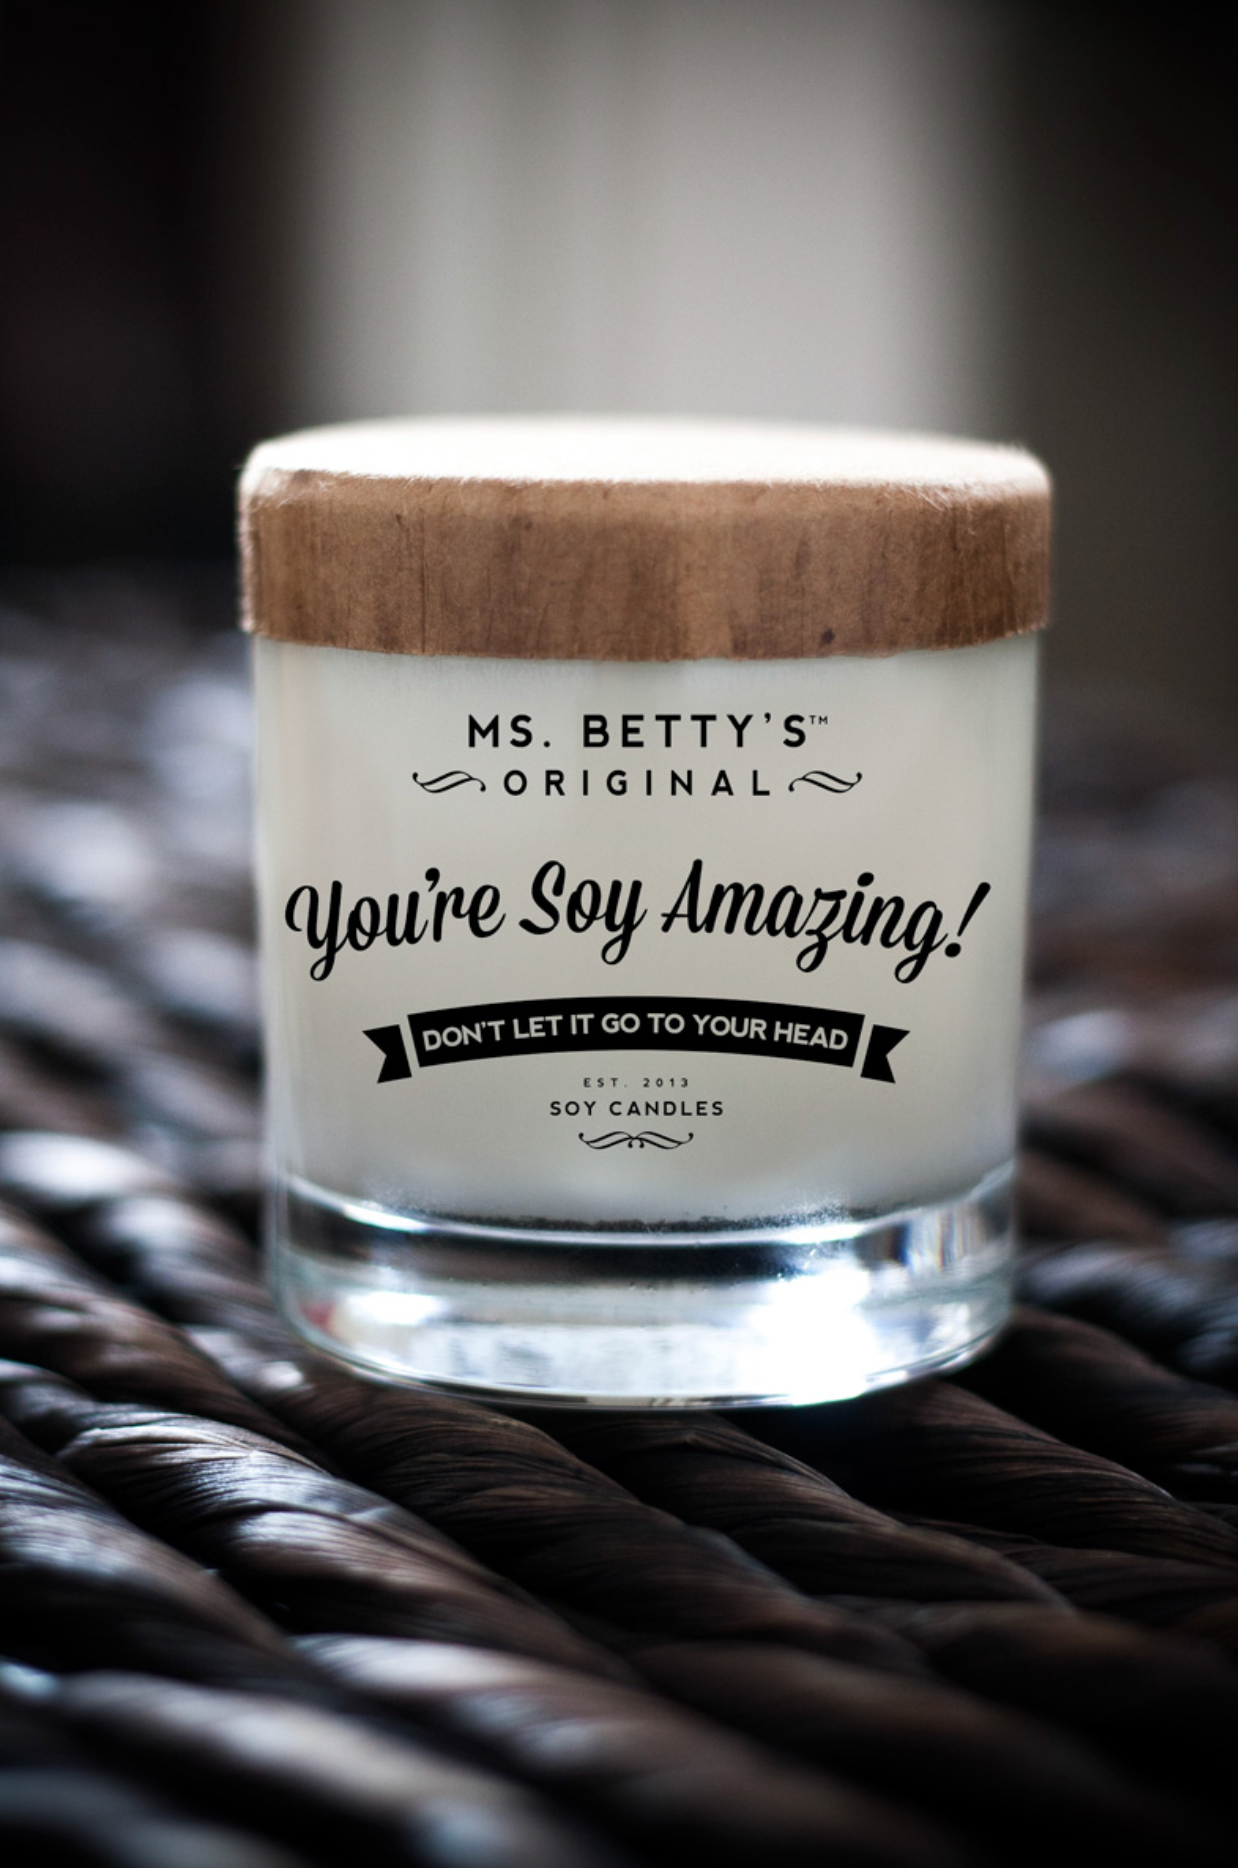 Ms. Betty's Original Bad-Ass Soy Candles